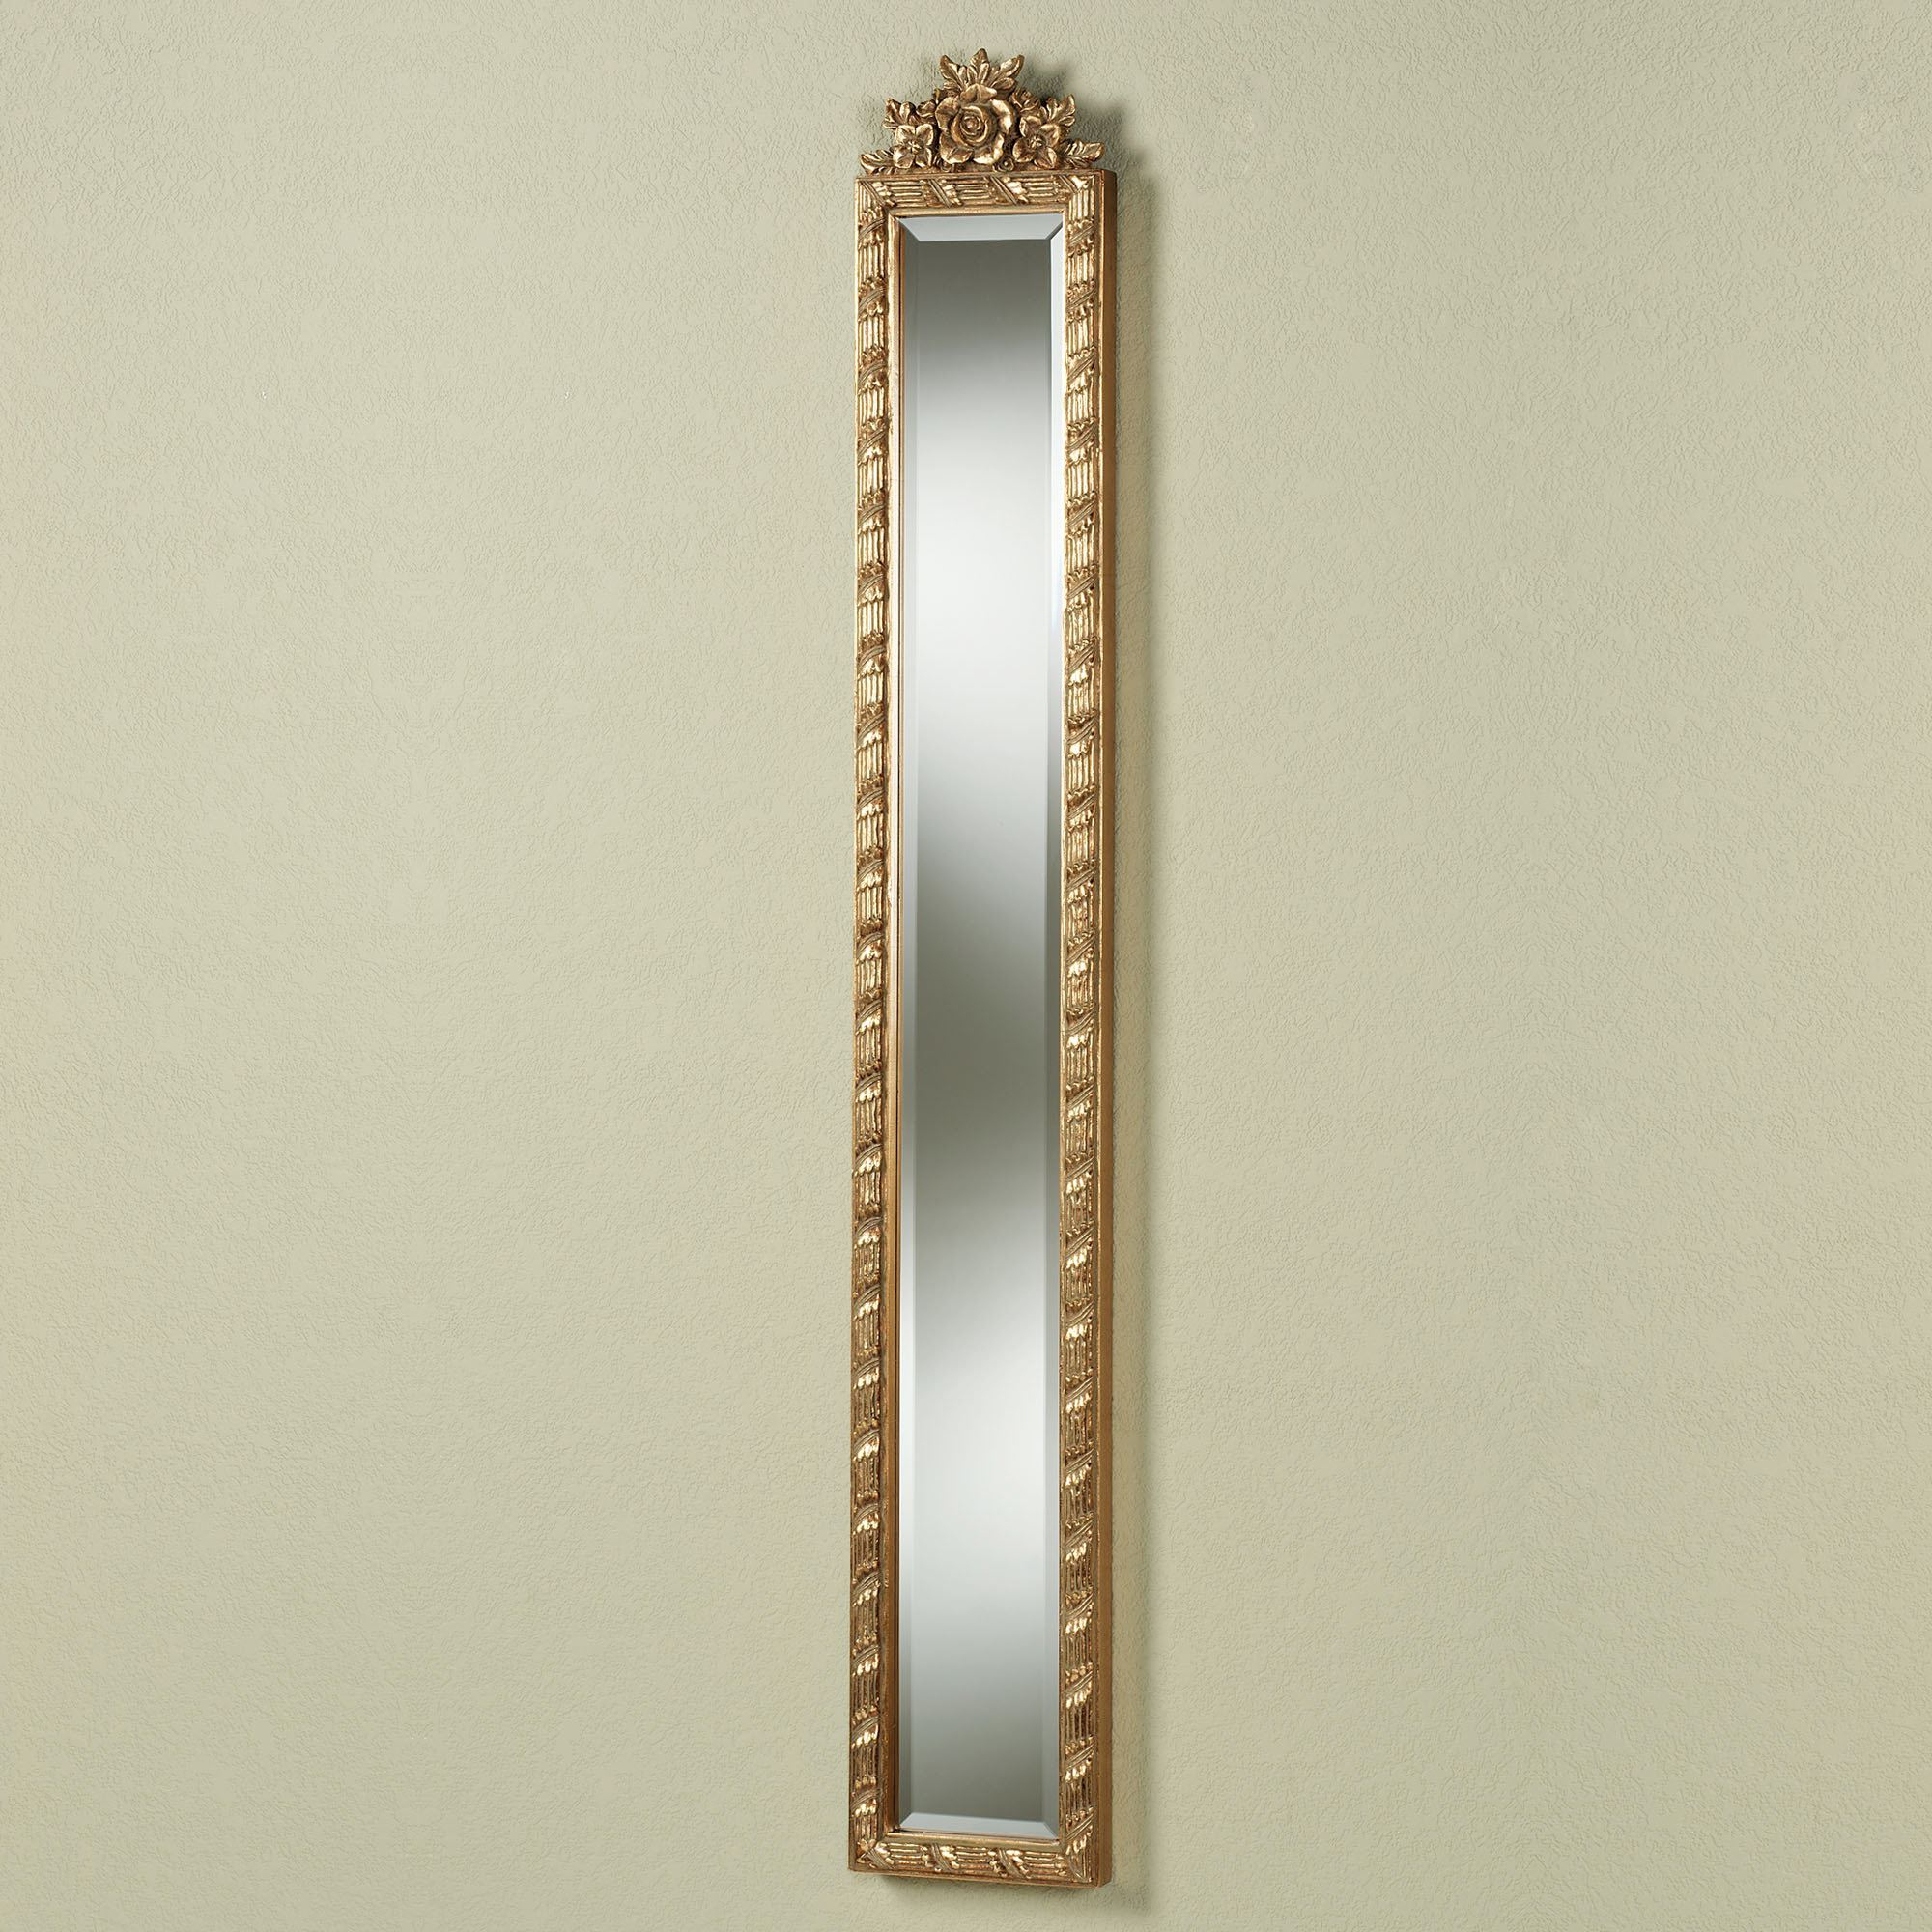 Gold Wall Mirrors Within 2019 Giuliana Antique Gold Floral Wall Mirror Panel (View 9 of 20)